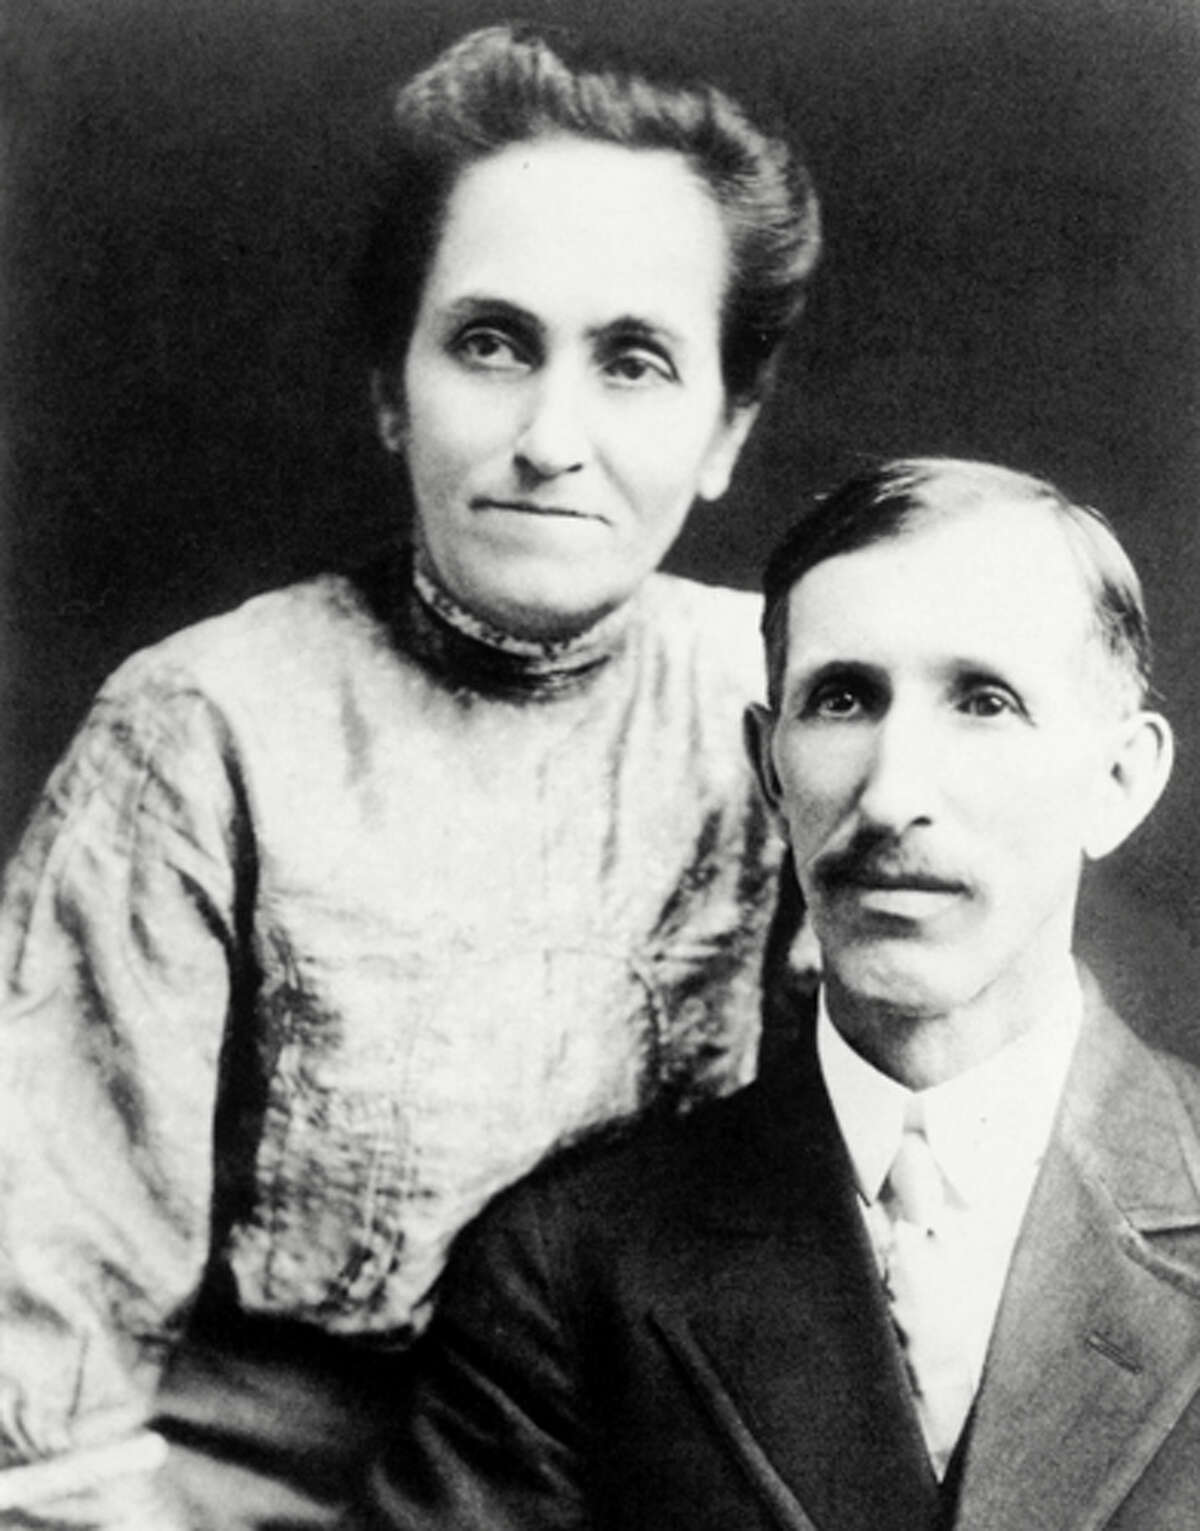 Disney is actually Latino Myth: The idea was floated in previous books that Disney's mom may have been Consuela Suarez of Spain. But there's no proof to disclaim the fact that Flora and Elias Disney (pictured here in 1890) were his actual parents.